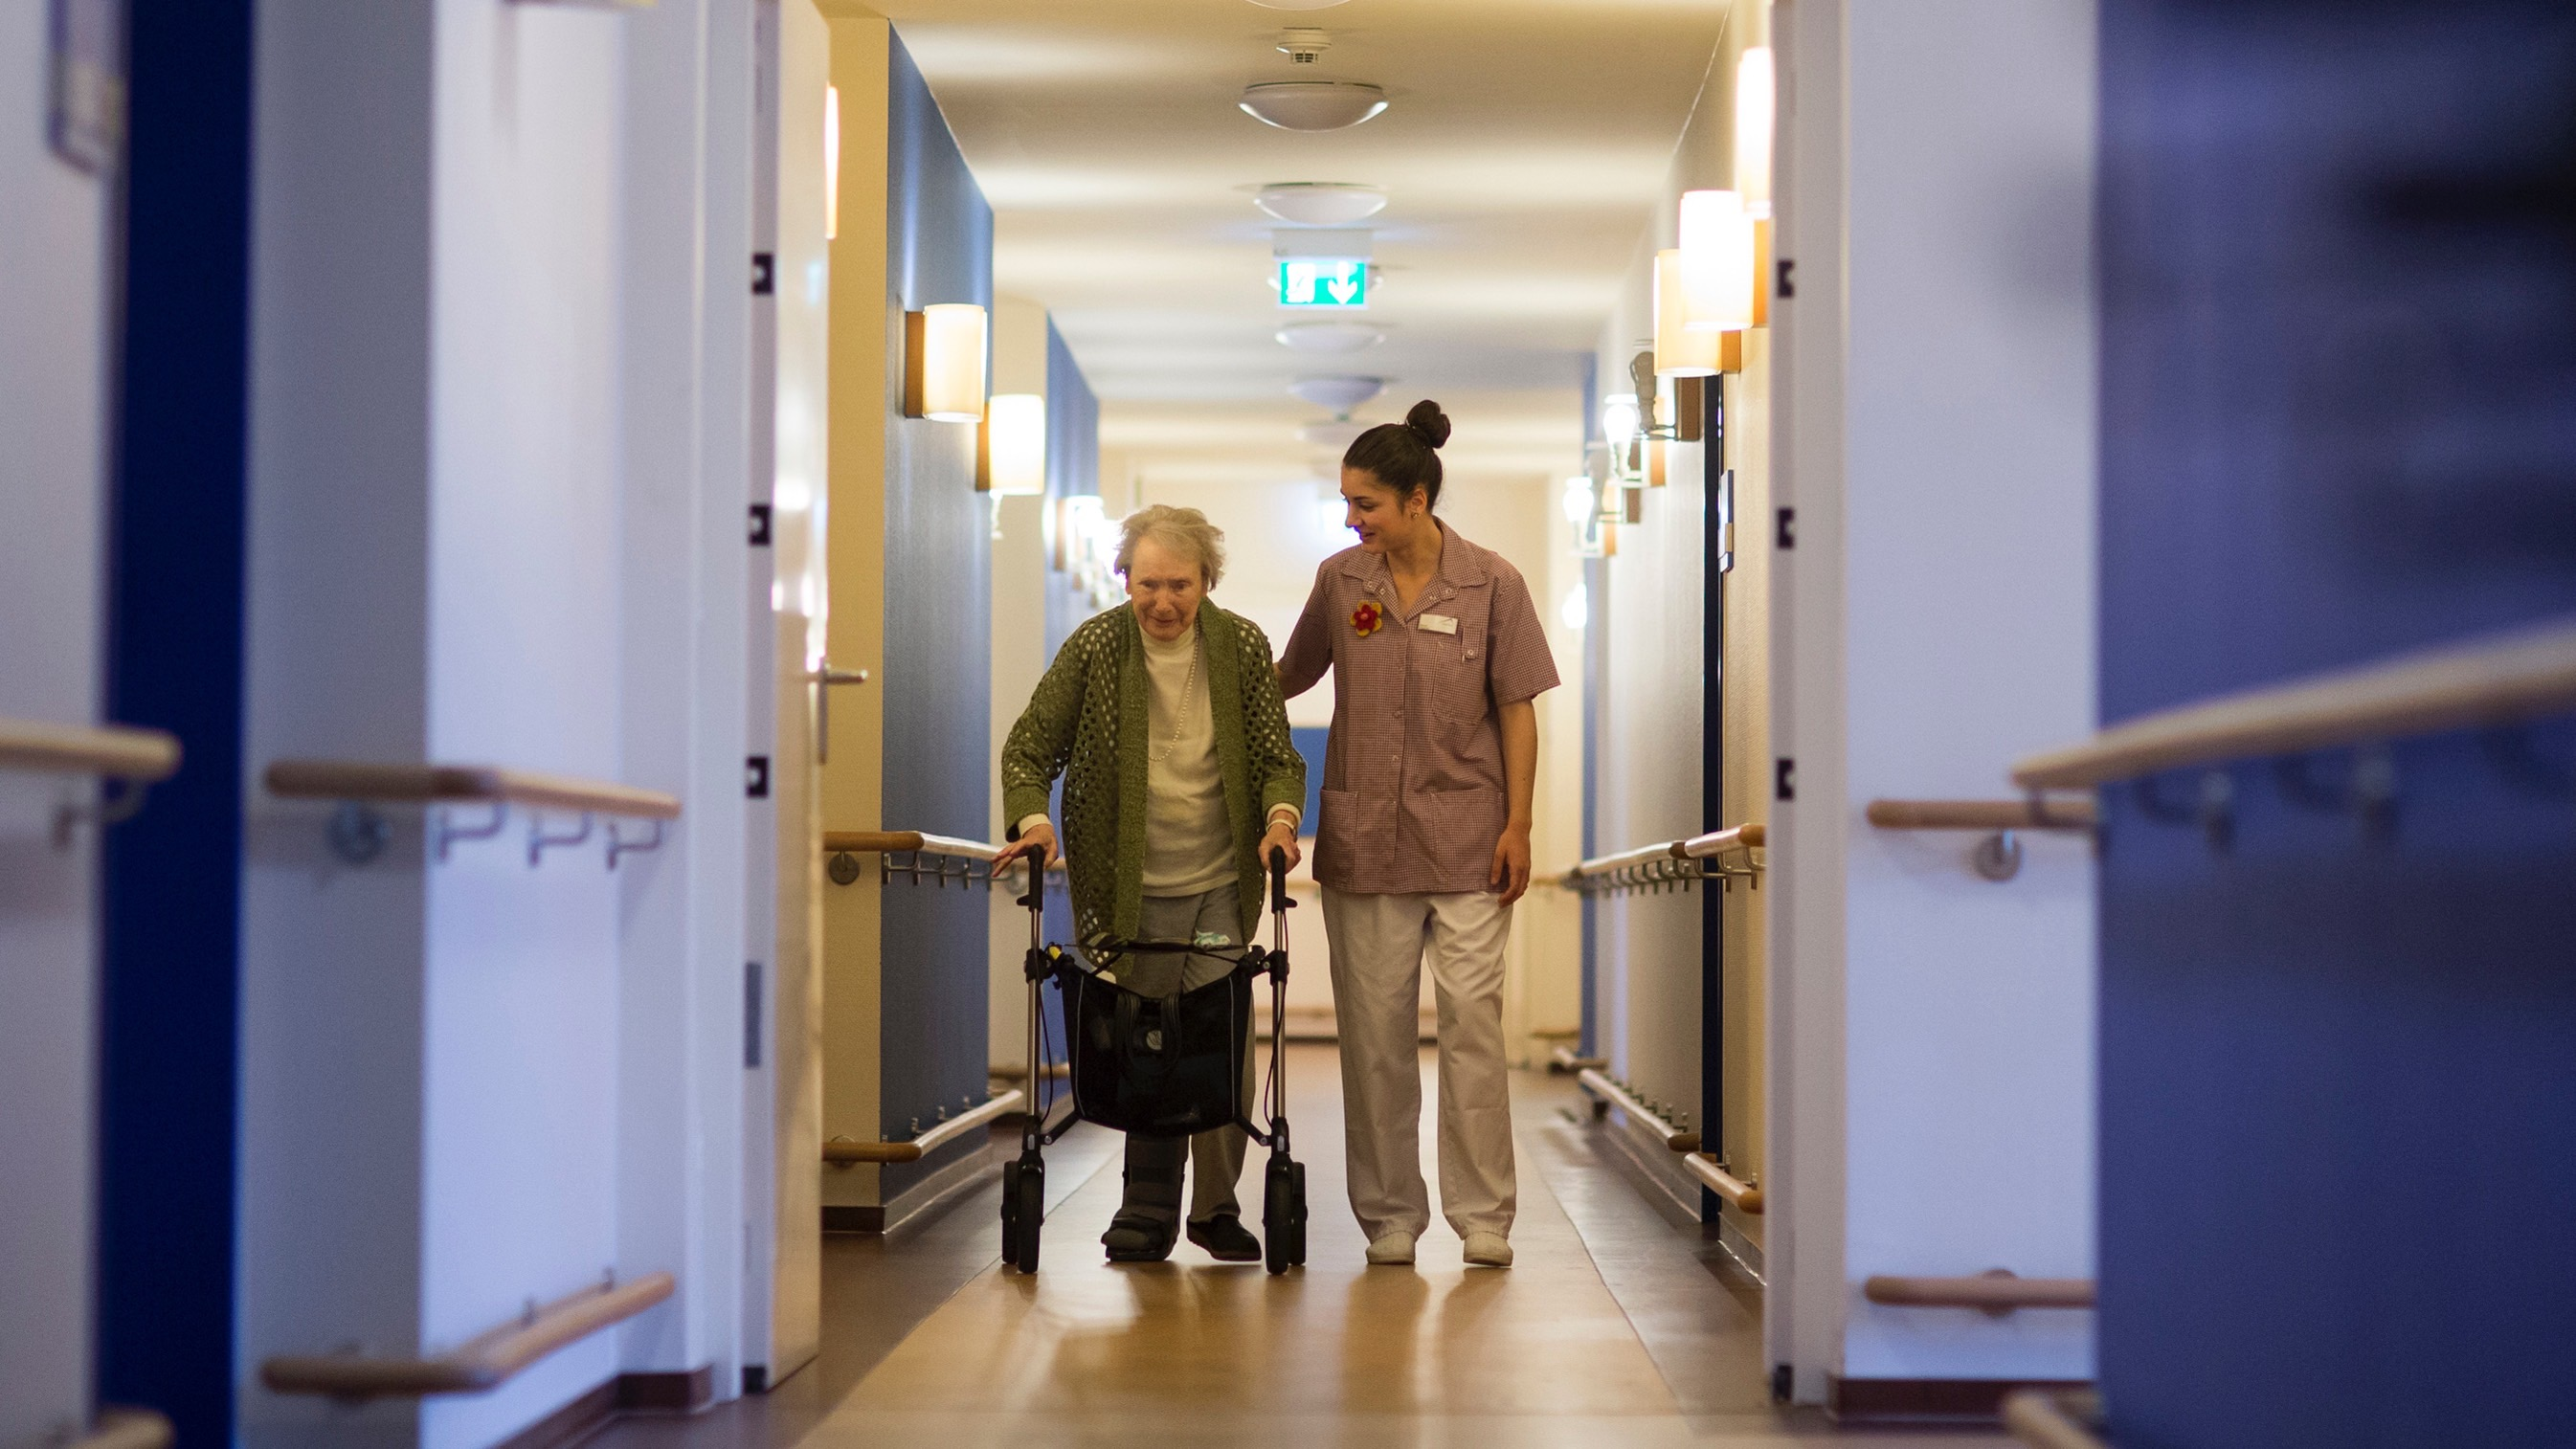 Researchers Have Developed Sensors That Can Prevent Senior